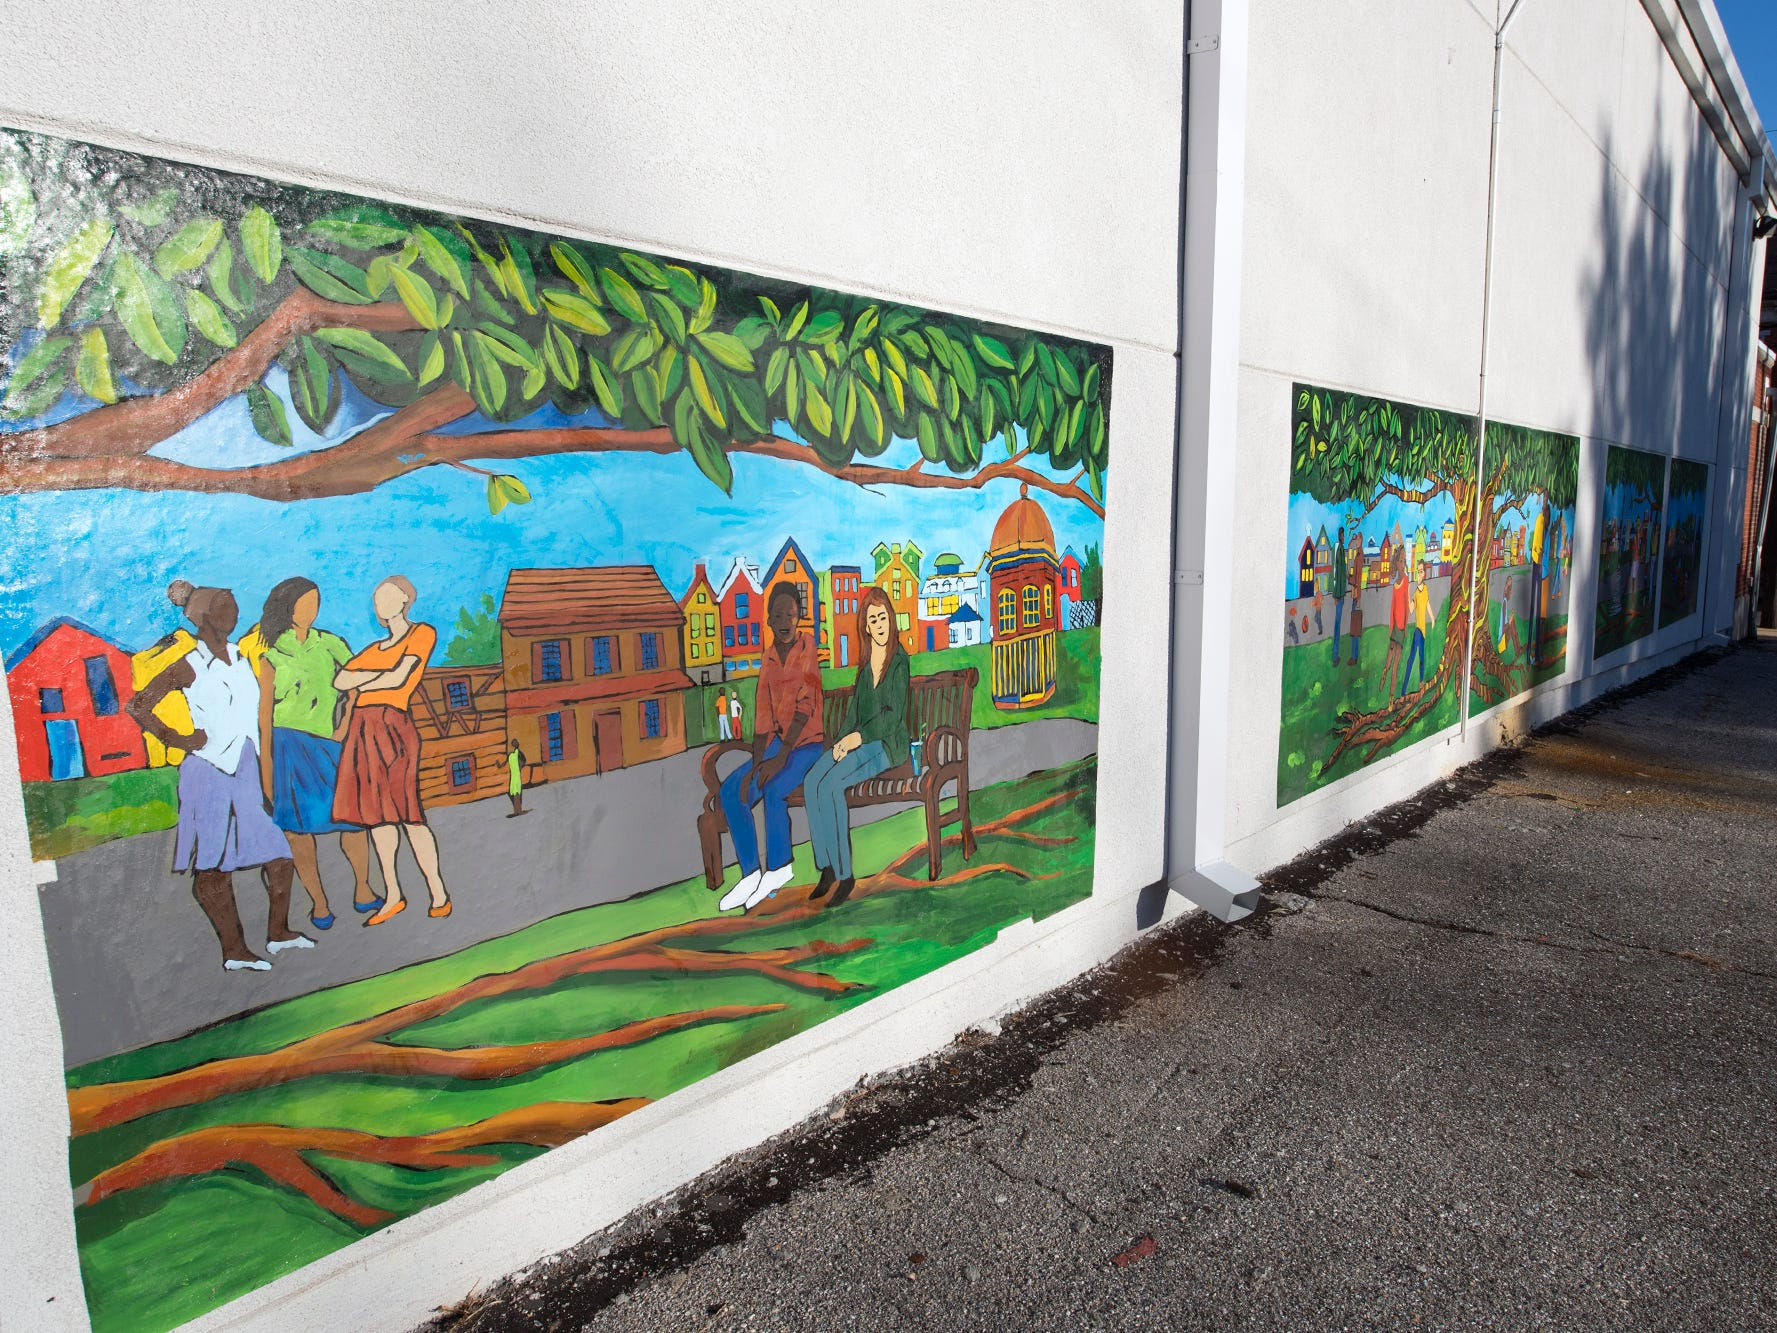 A mural on a restored and painted exterior wall of Voni Grimes gym was part of the renovation work.